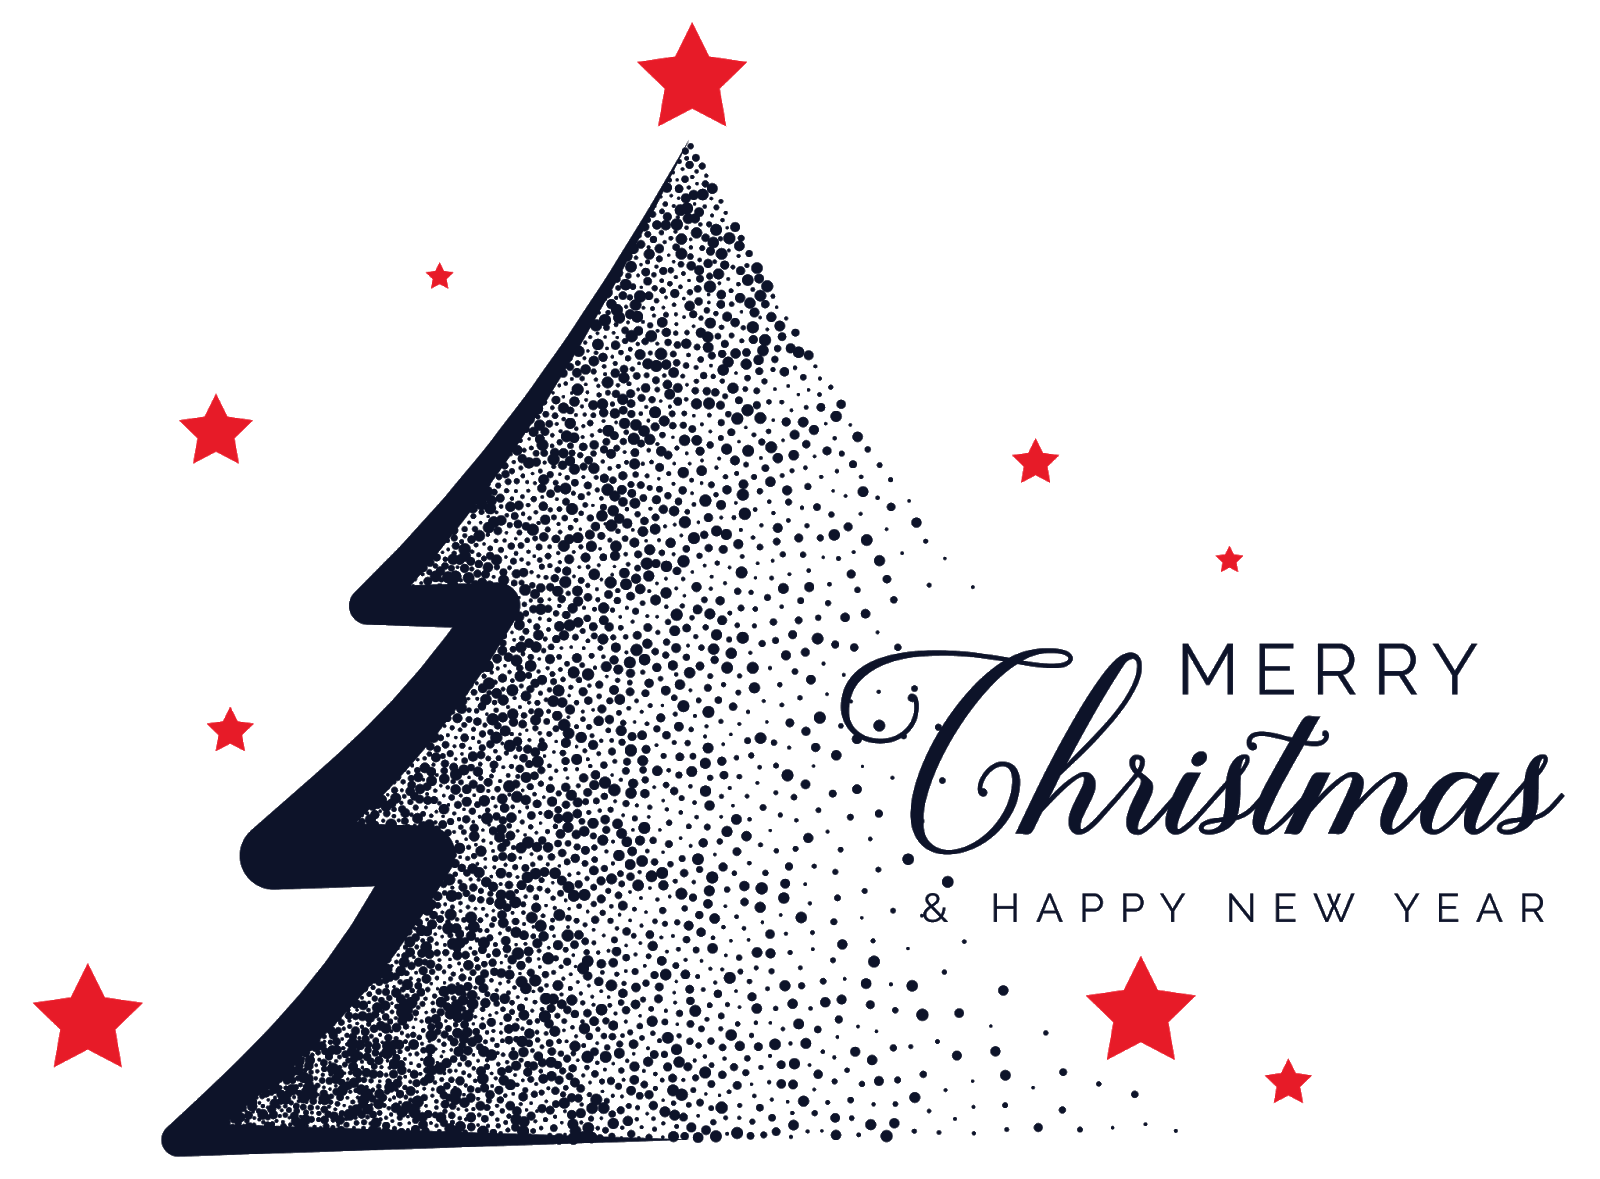 Transparent christmas png. Images free download pngmart